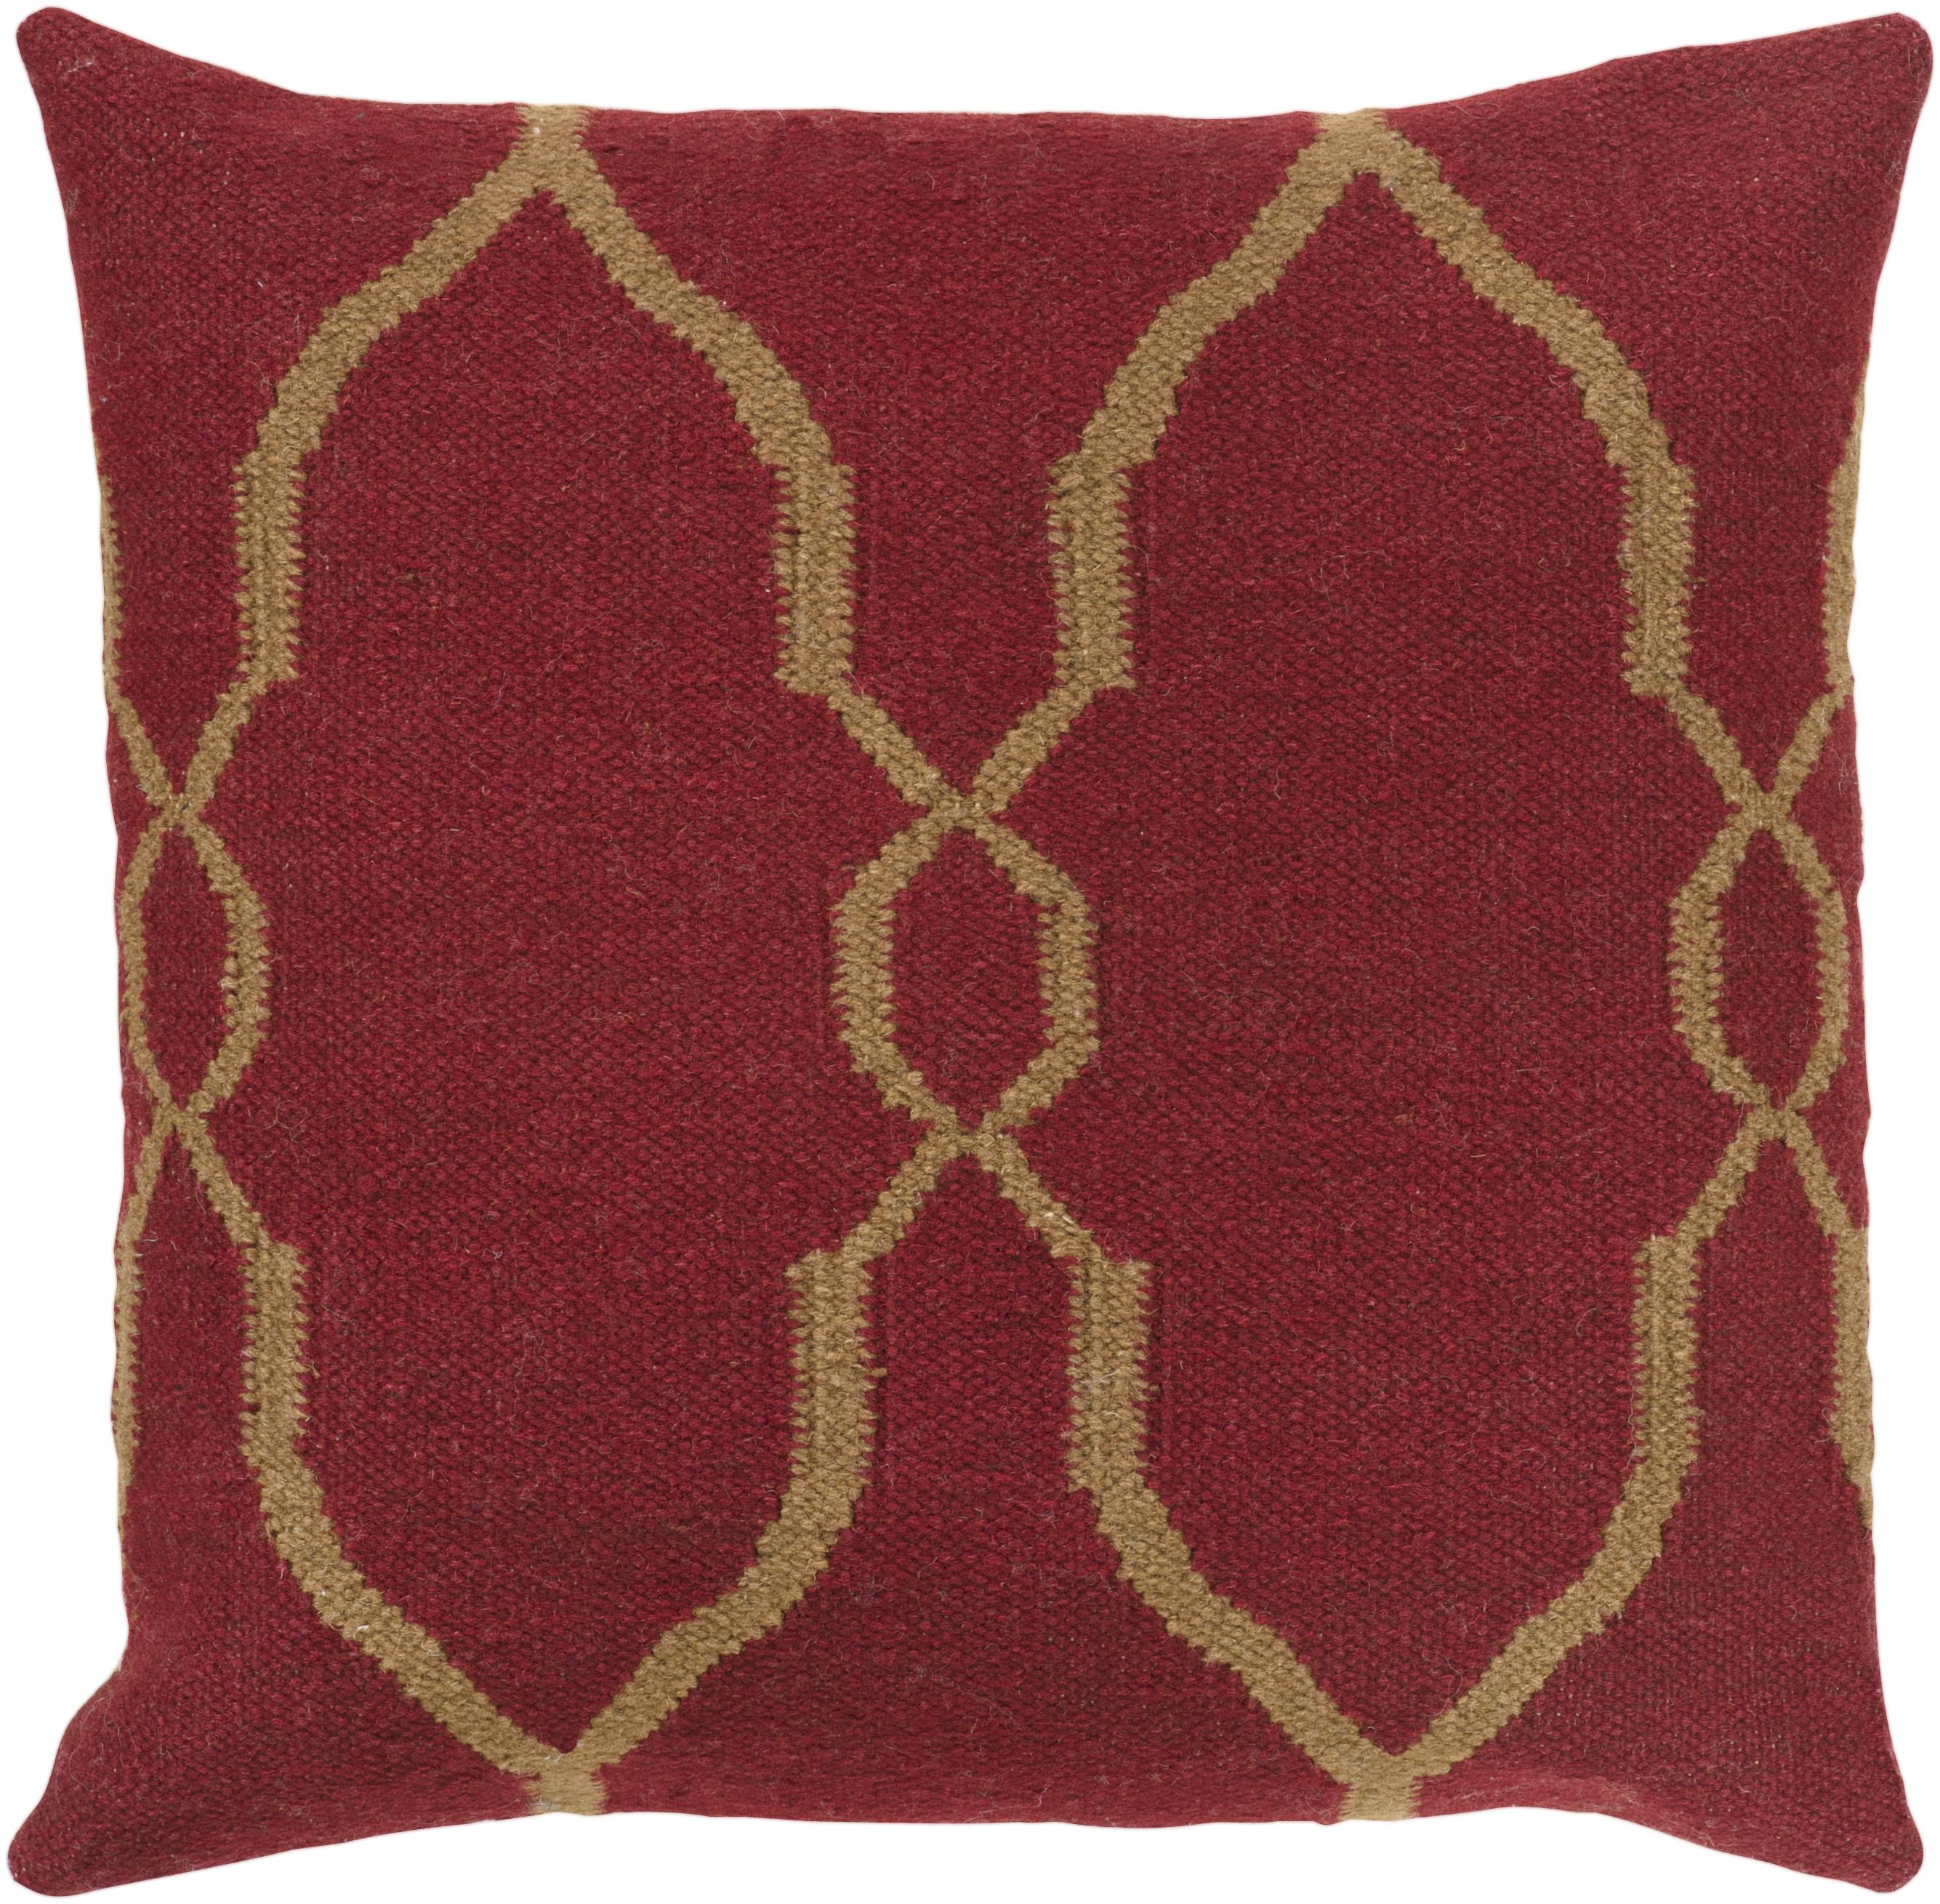 "Surya Pillows 22"" x 22"" Pillow - Item Number: FA019-2222P"